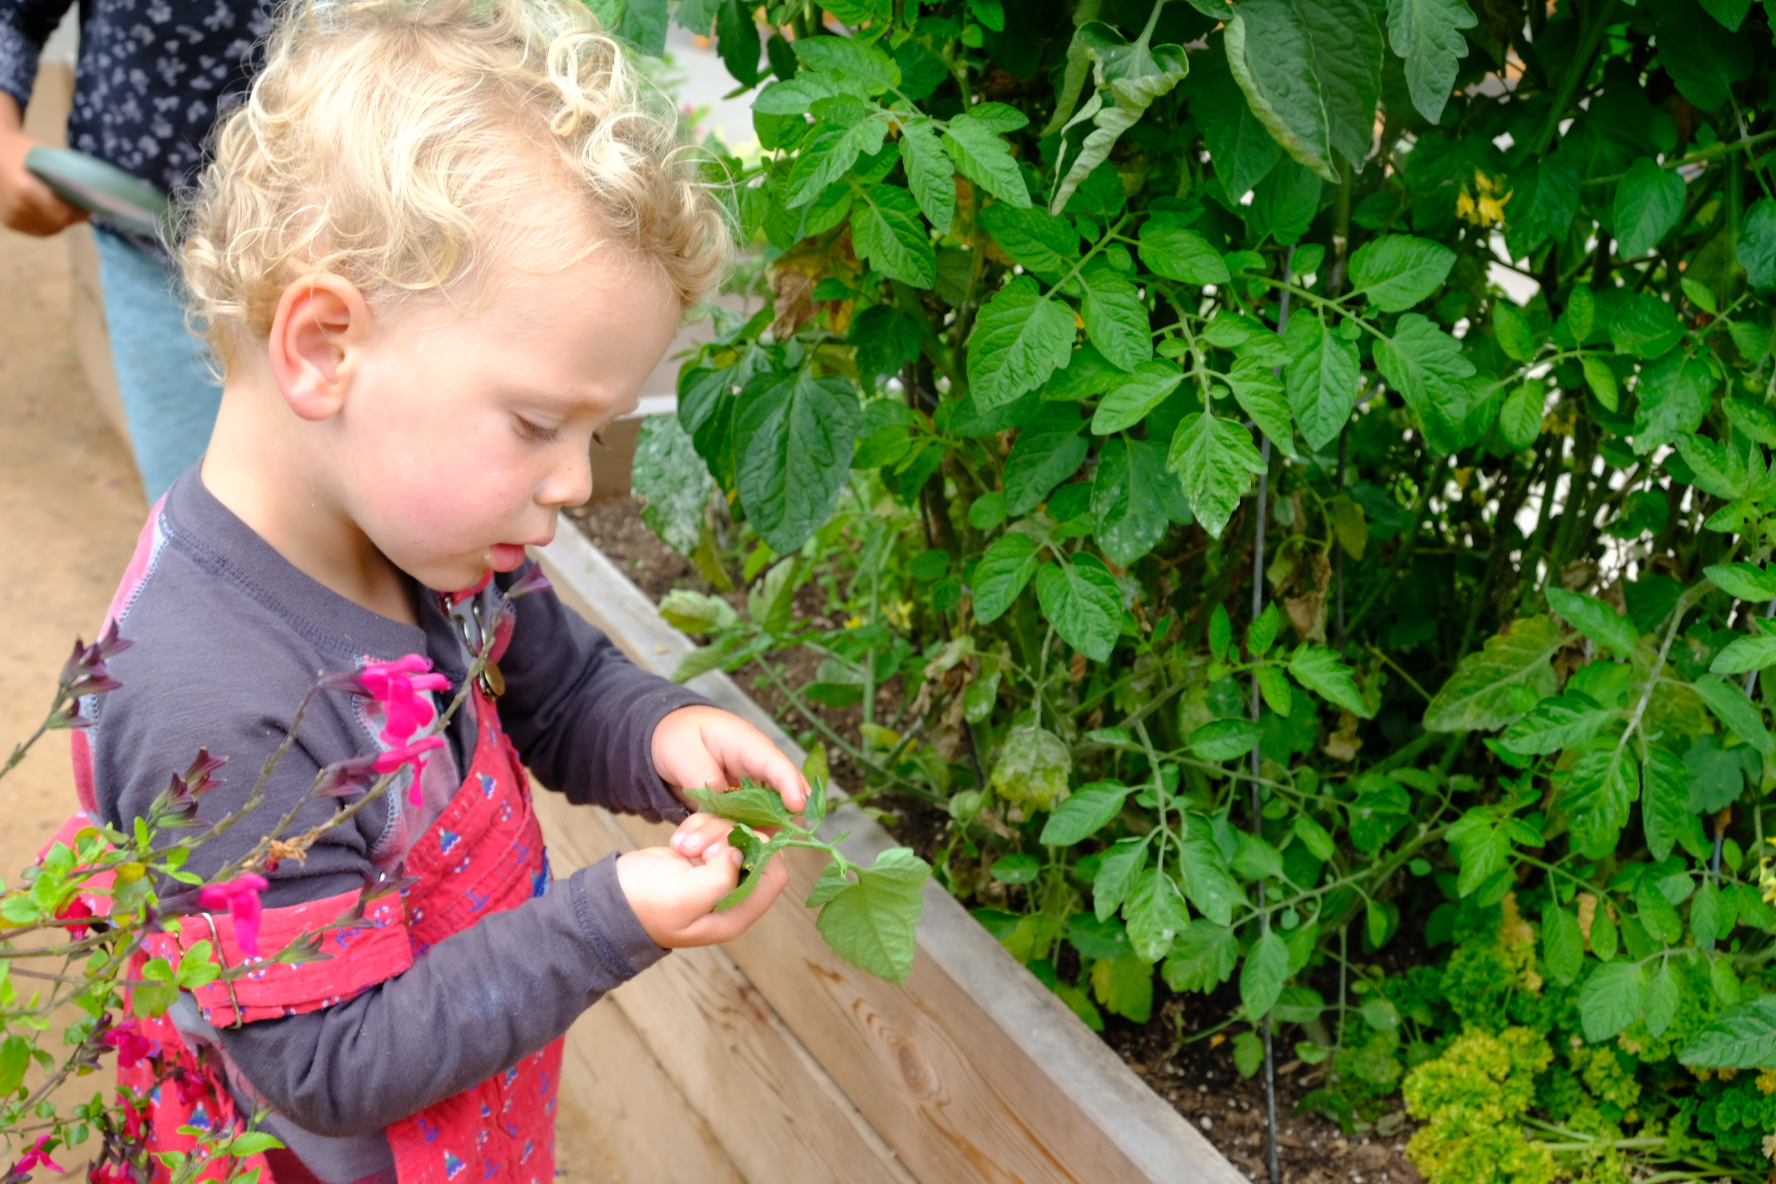 """ROLE OF THE ENVIRONMENT - The school environment serves as a """"third teacher"""", engaging children's interests, inspiring learning, and supporting autonomy."""